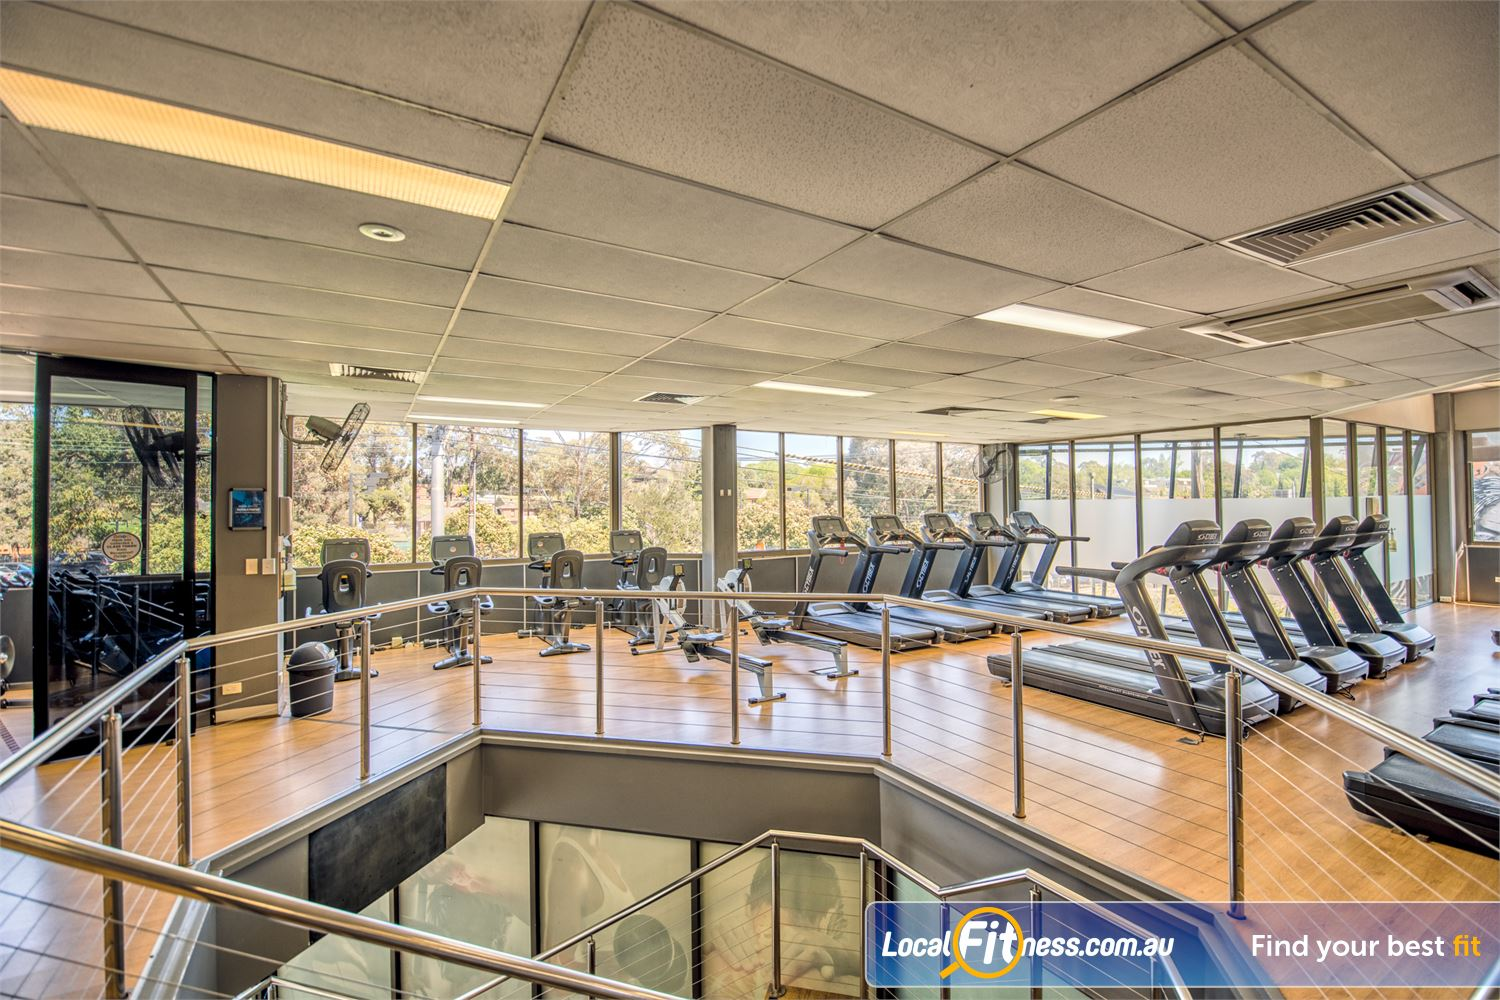 Goodlife Health Clubs Balwyn Our Balwyn gym provides 2 levels of fitness under one roof.